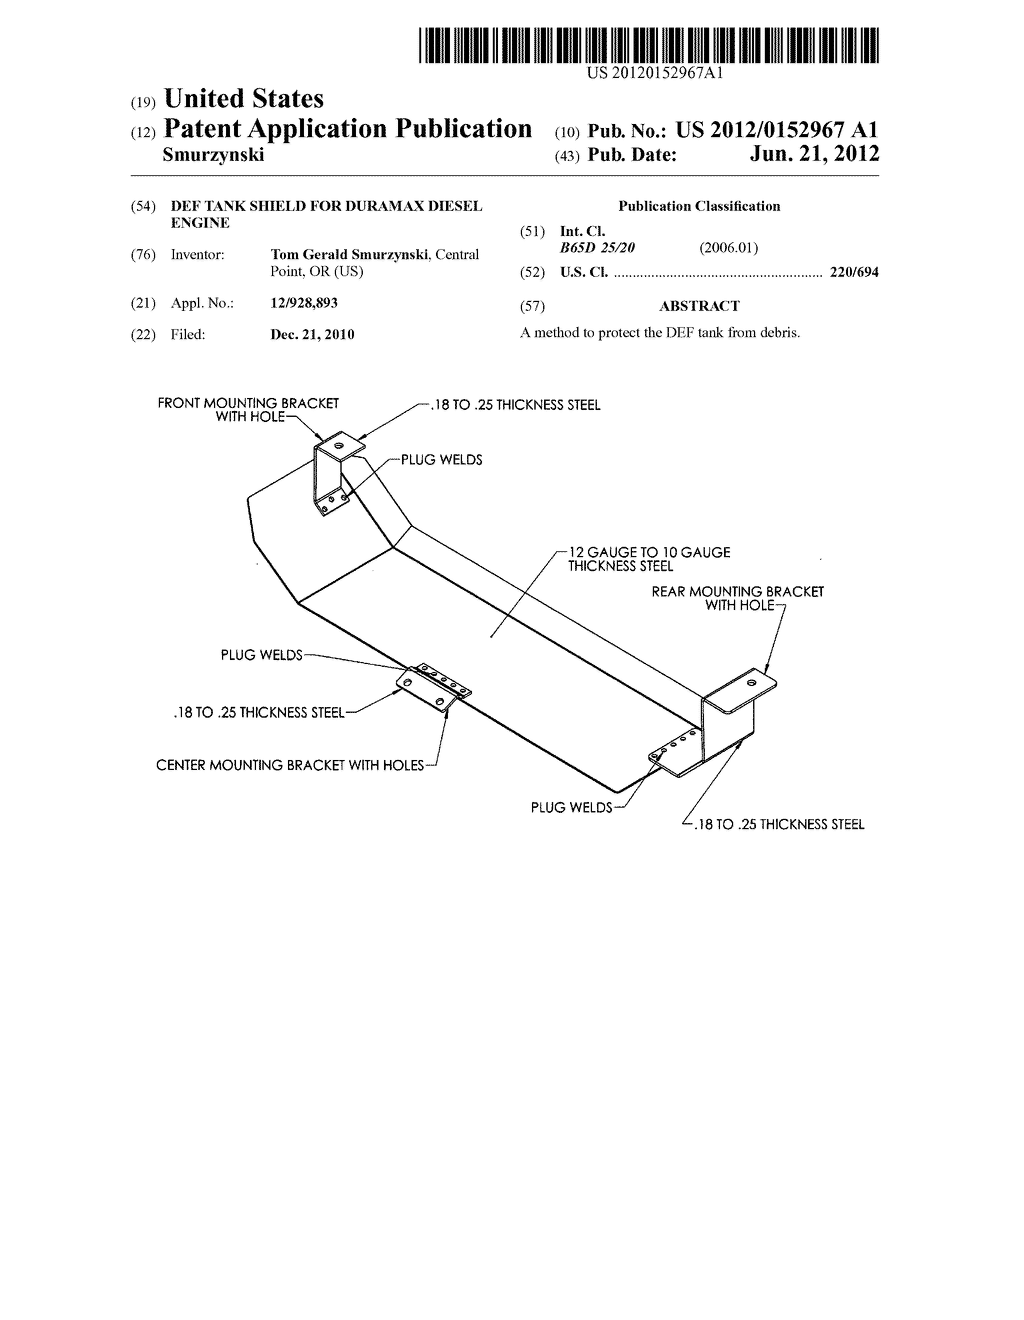 Def tank shield for duramax diesel engine - diagram, schematic, and image 01